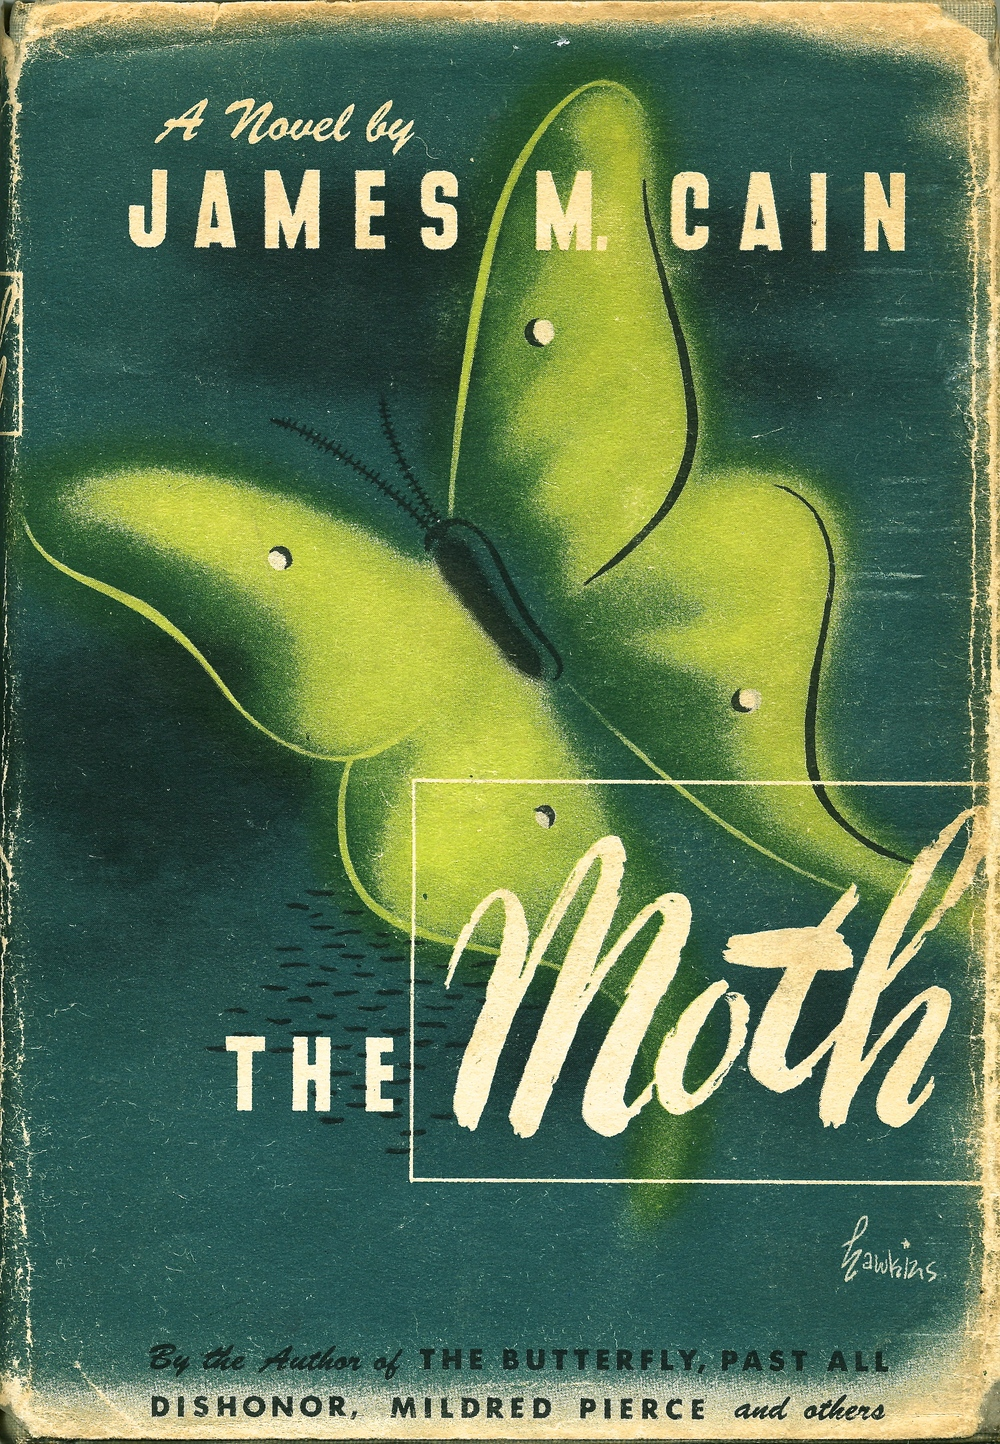 → The Moth | James M Cain 1948 | Book jacket by Arthur Hawkins Jr